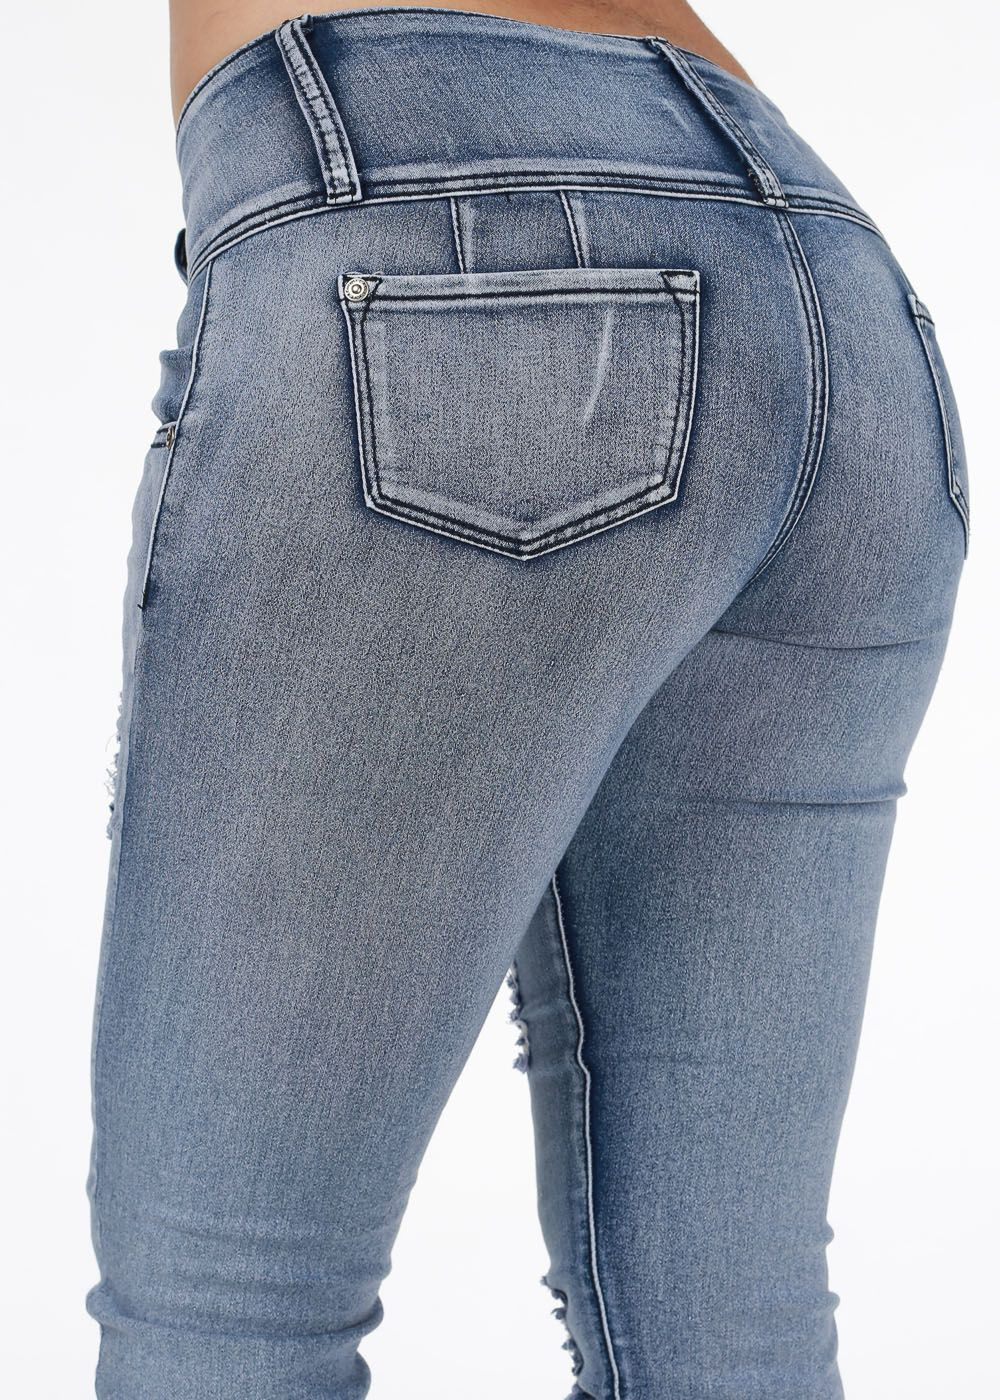 Cute Jeans- Trendy Butt Lifting Jeans- Blue skinny jeans